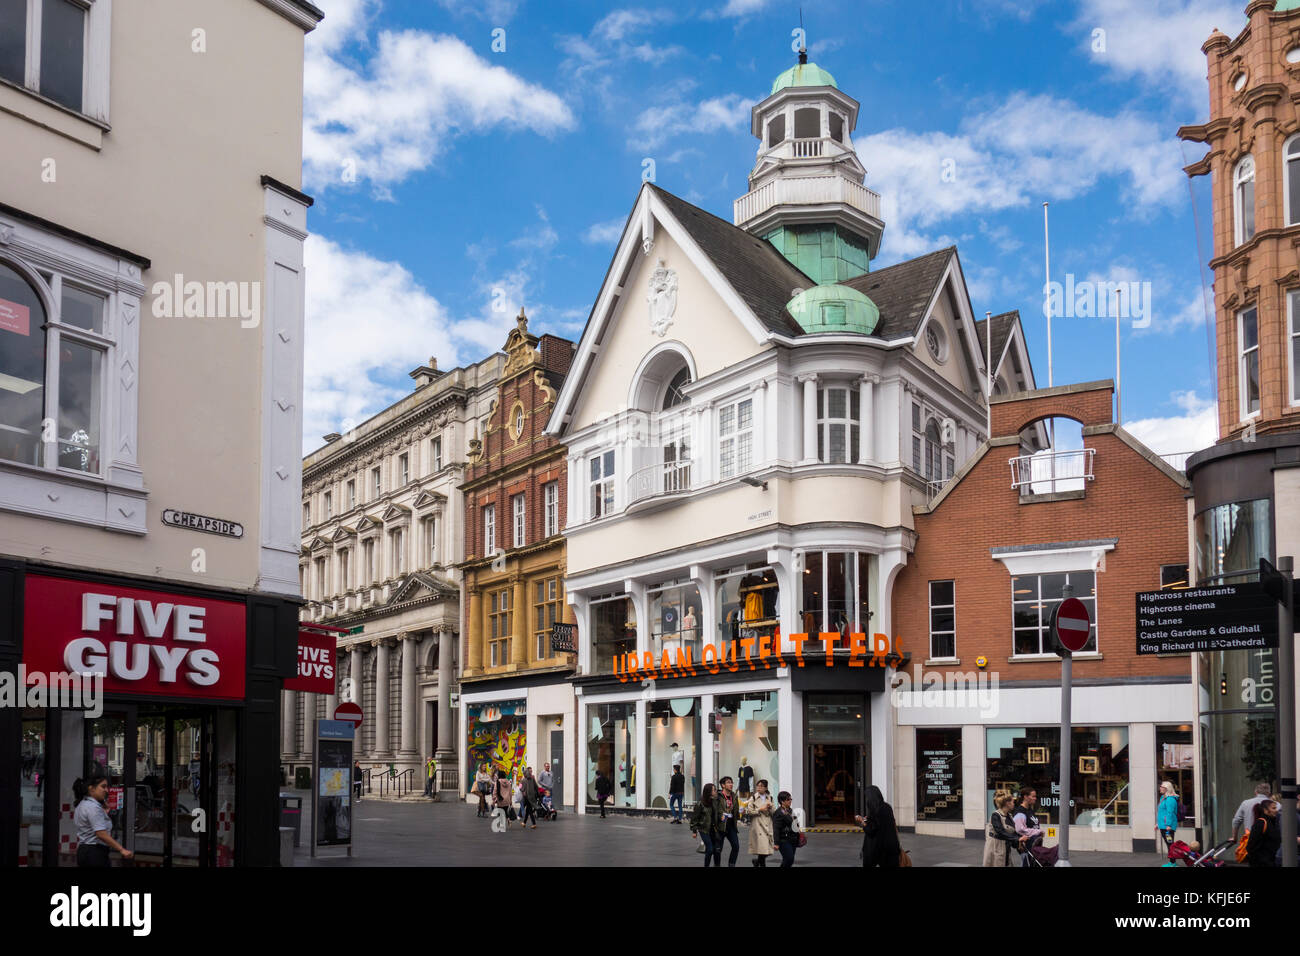 Shops on High Street, Leicester, Leicestershire, East Midlands, UK - Stock Image